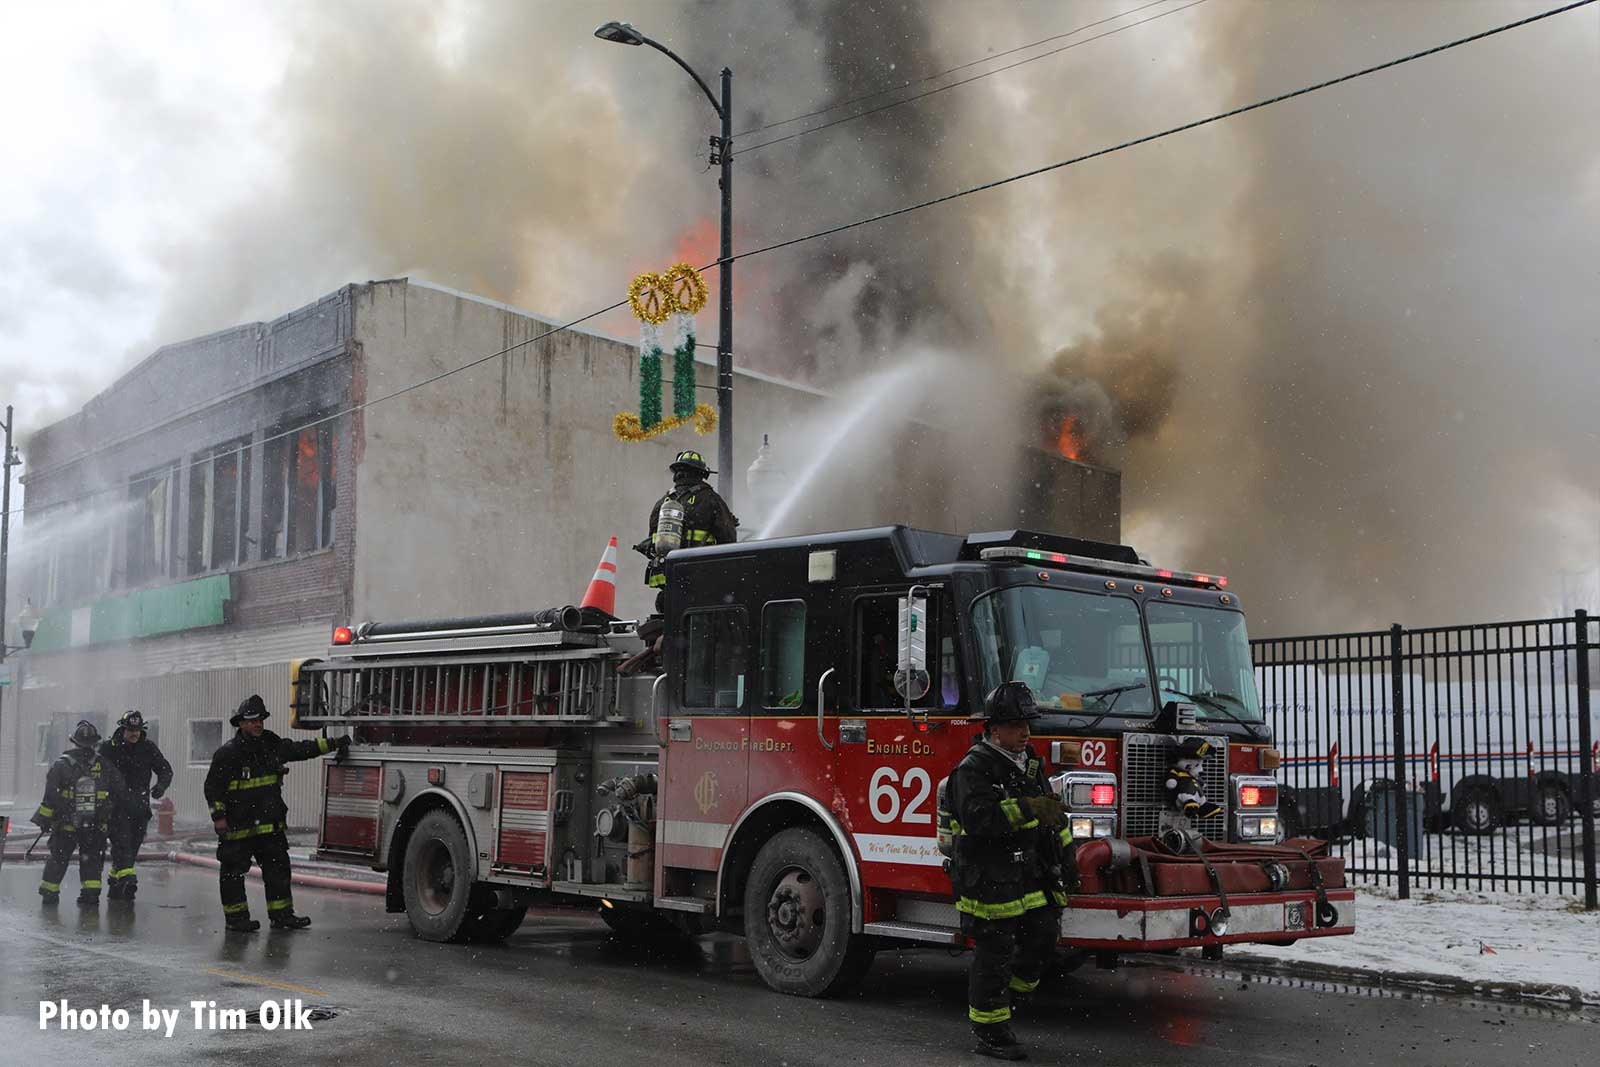 Chicago fire apparatus with firefighter using a deck gun